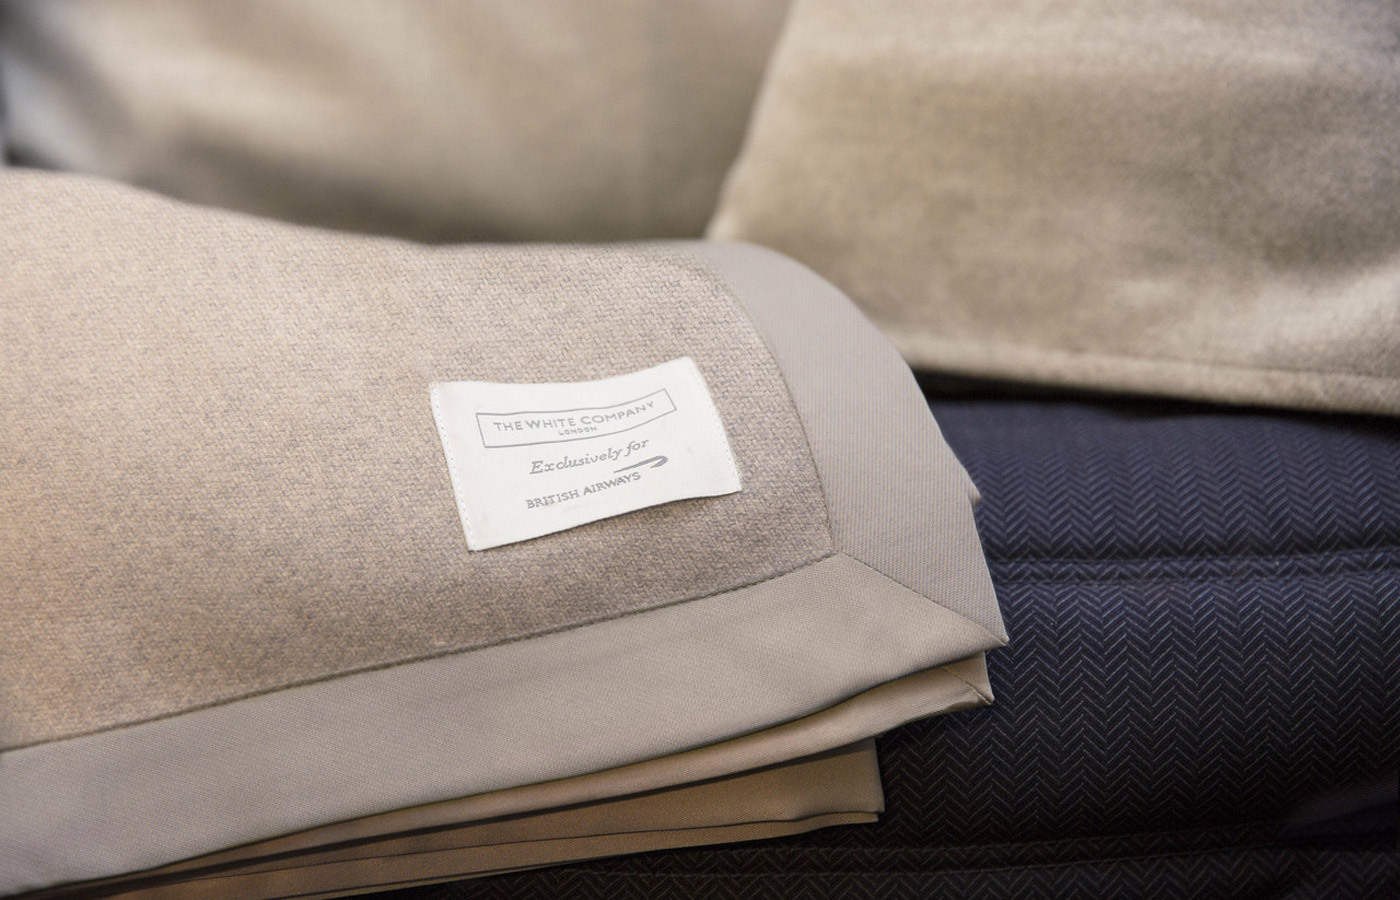 Comfortable White Company bedding in the British Airways Club World cabin